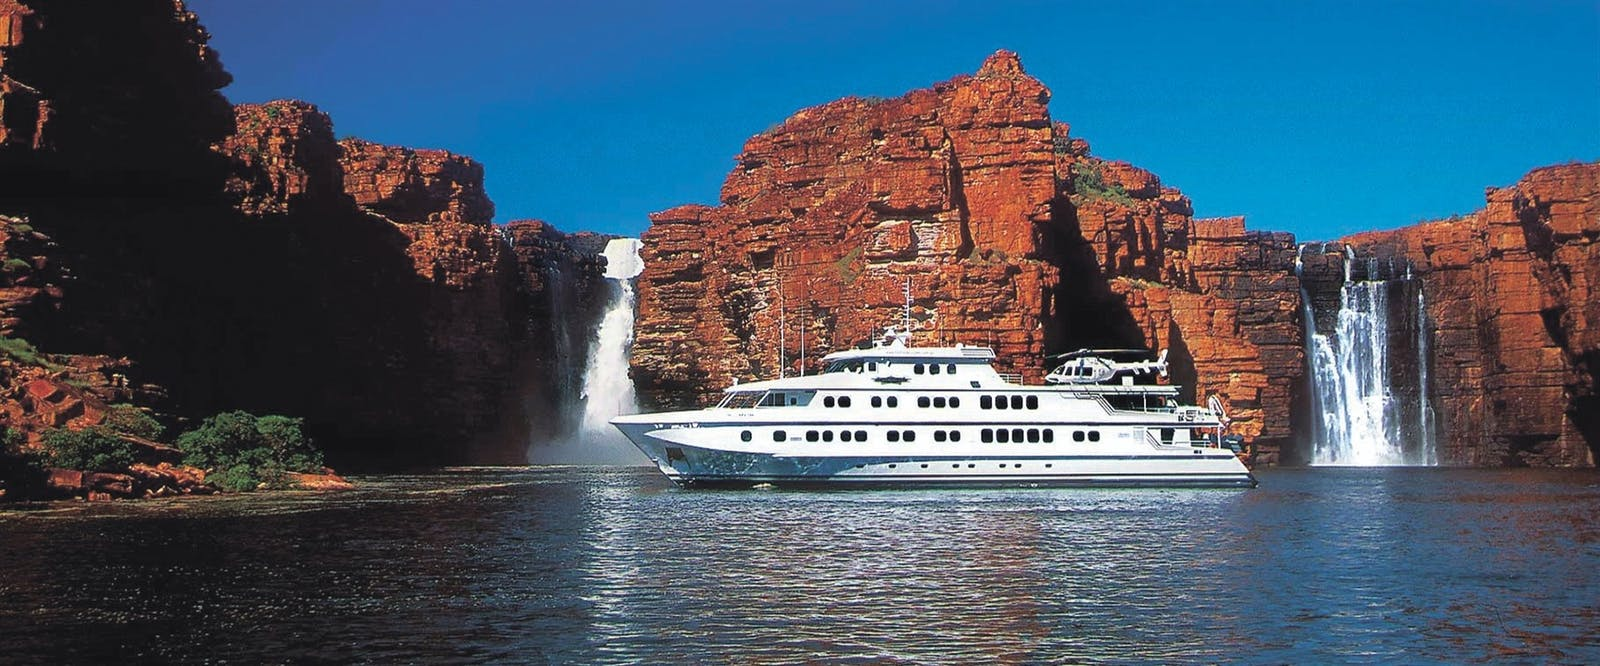 King George Falls, True North Cruise, The Kimberley